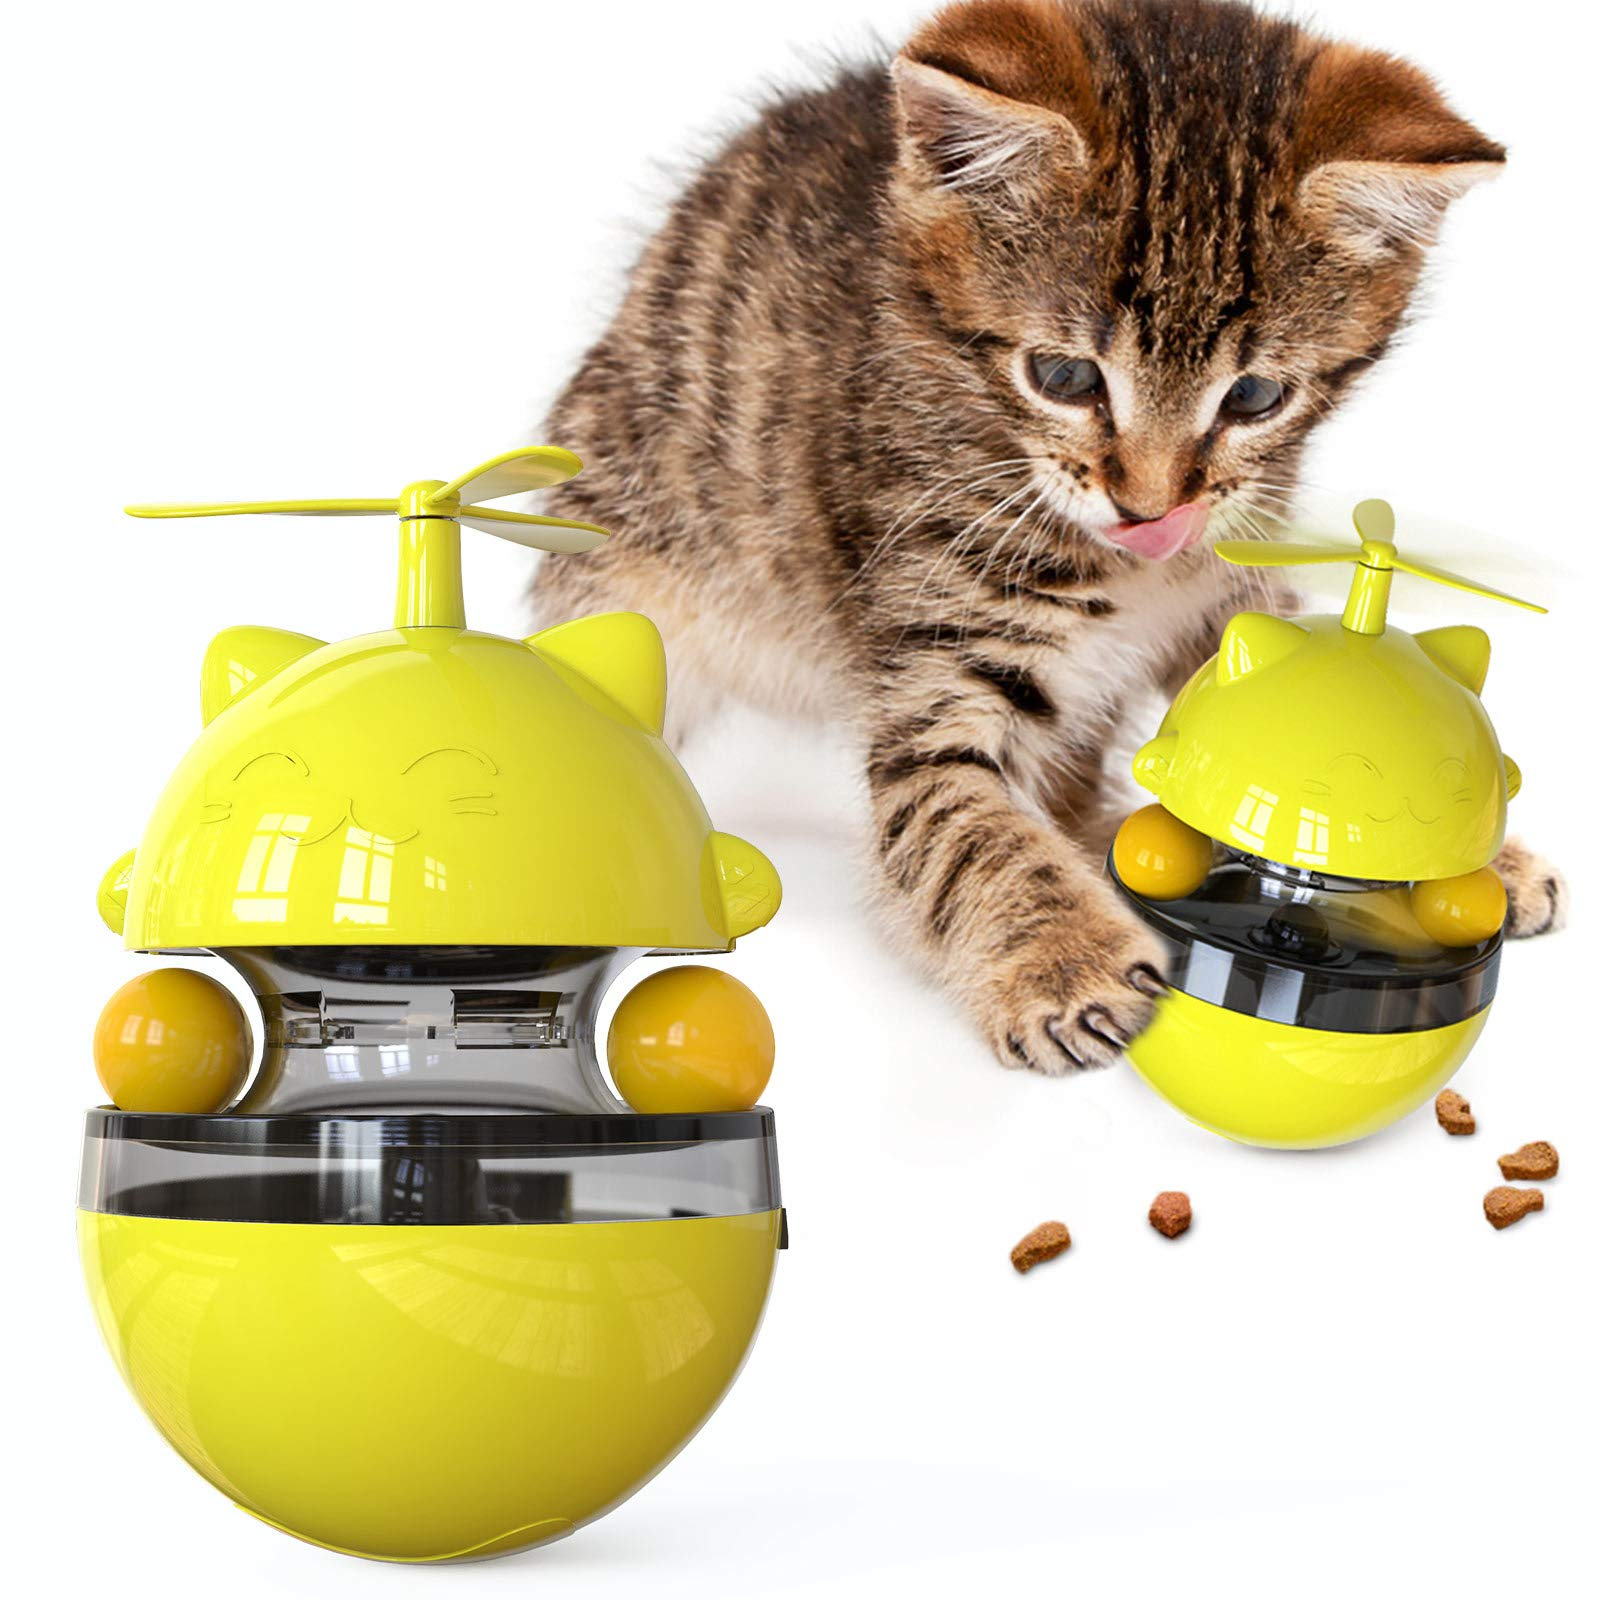 Cat Turntable Toys Kitten Toy Kitty Supplies Interactive Spinning Track Ball for